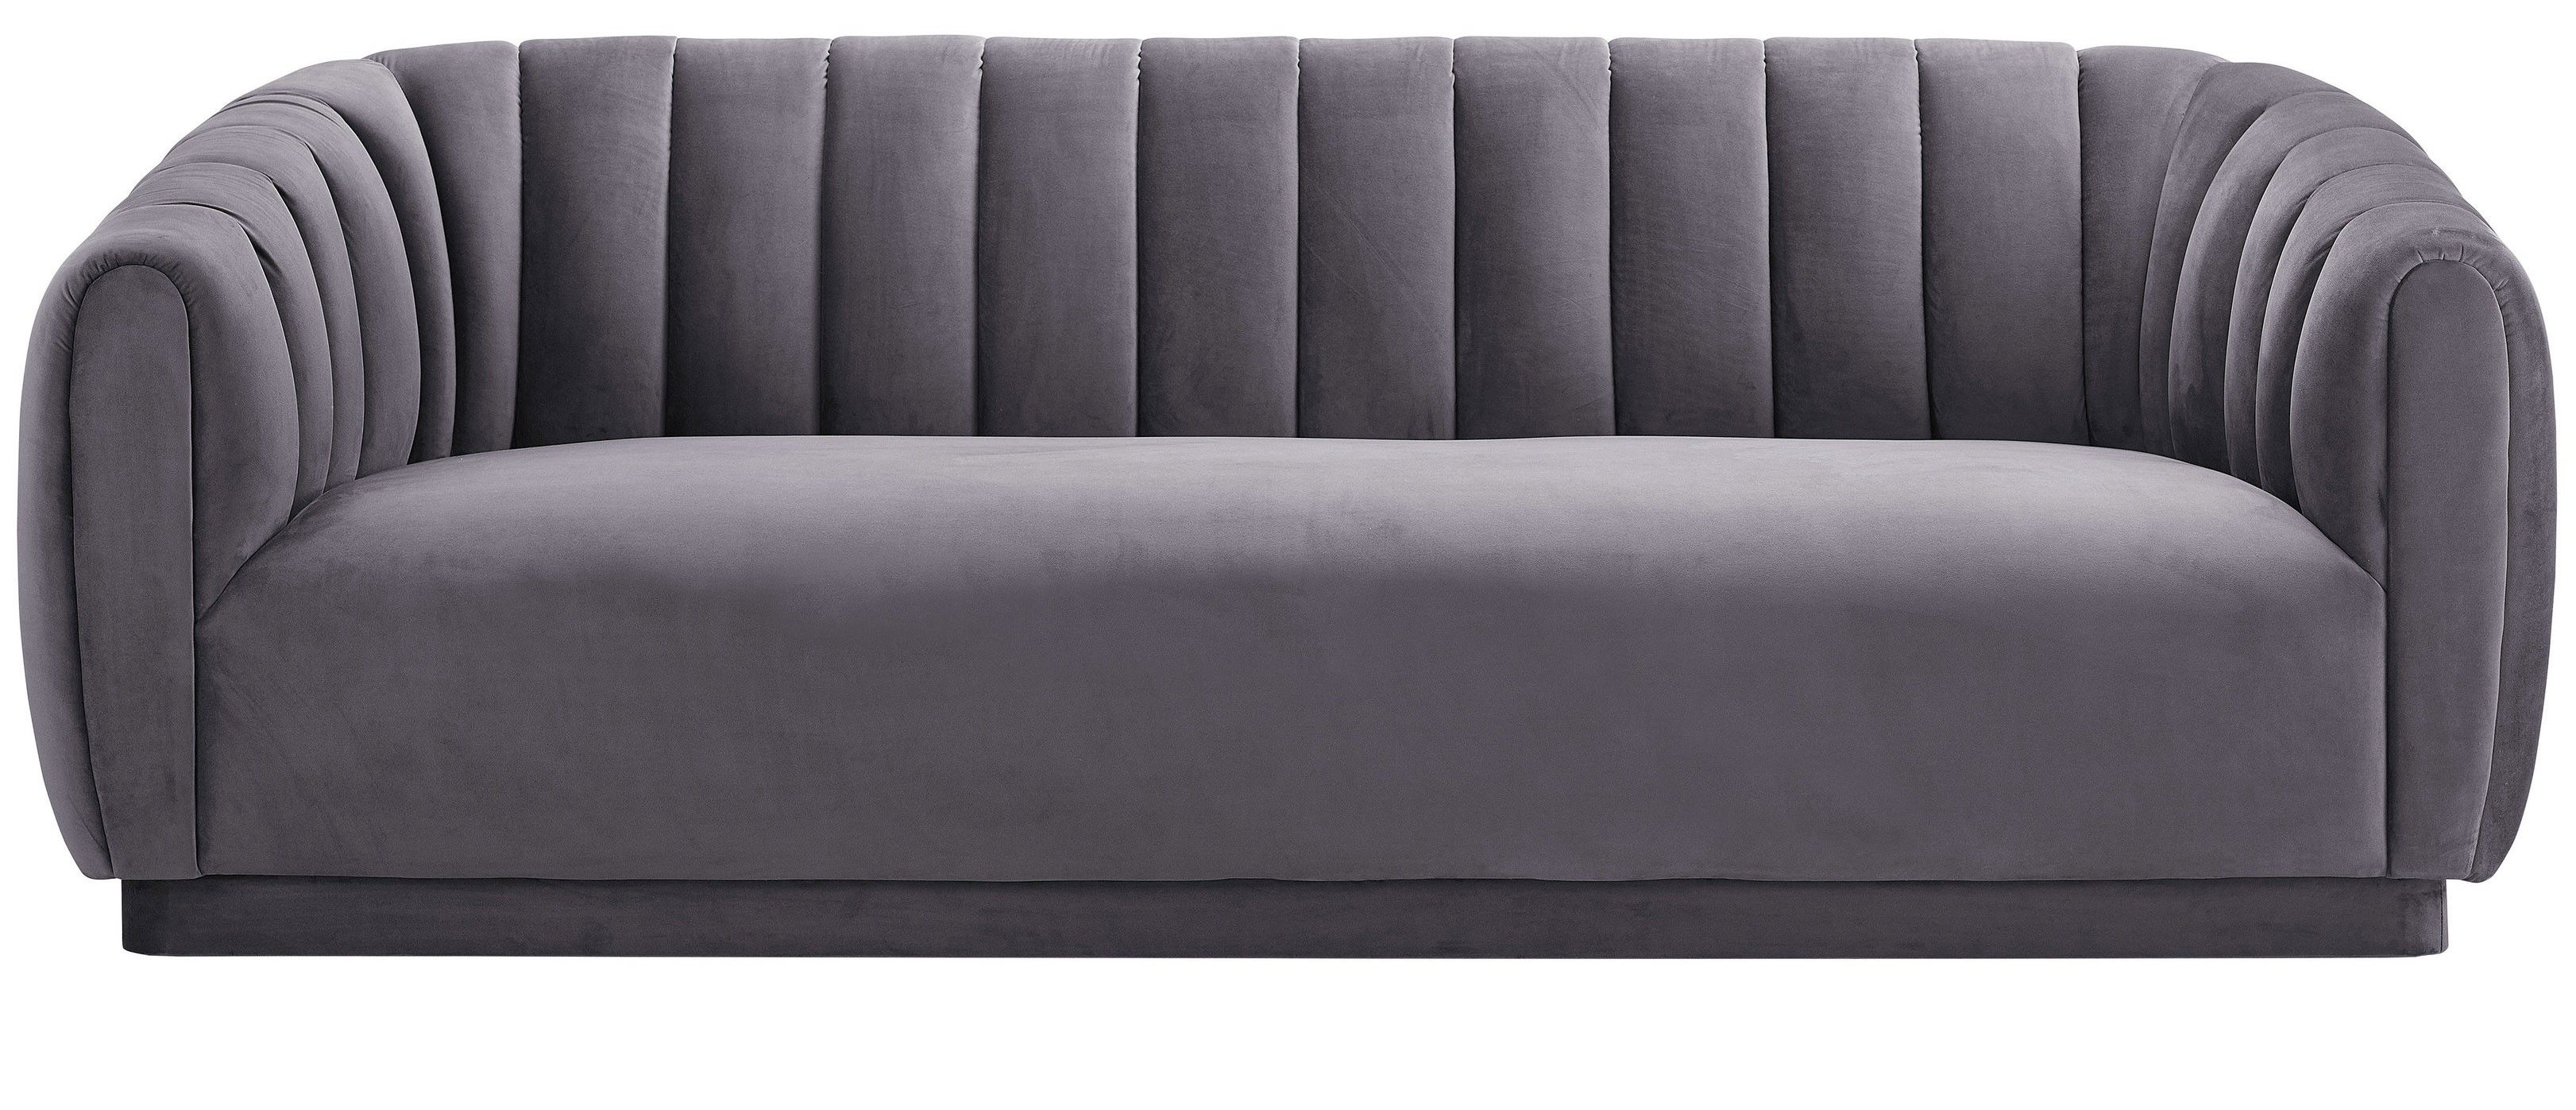 A single cushion and vertical tufting create an open invitation to sit down and relax in